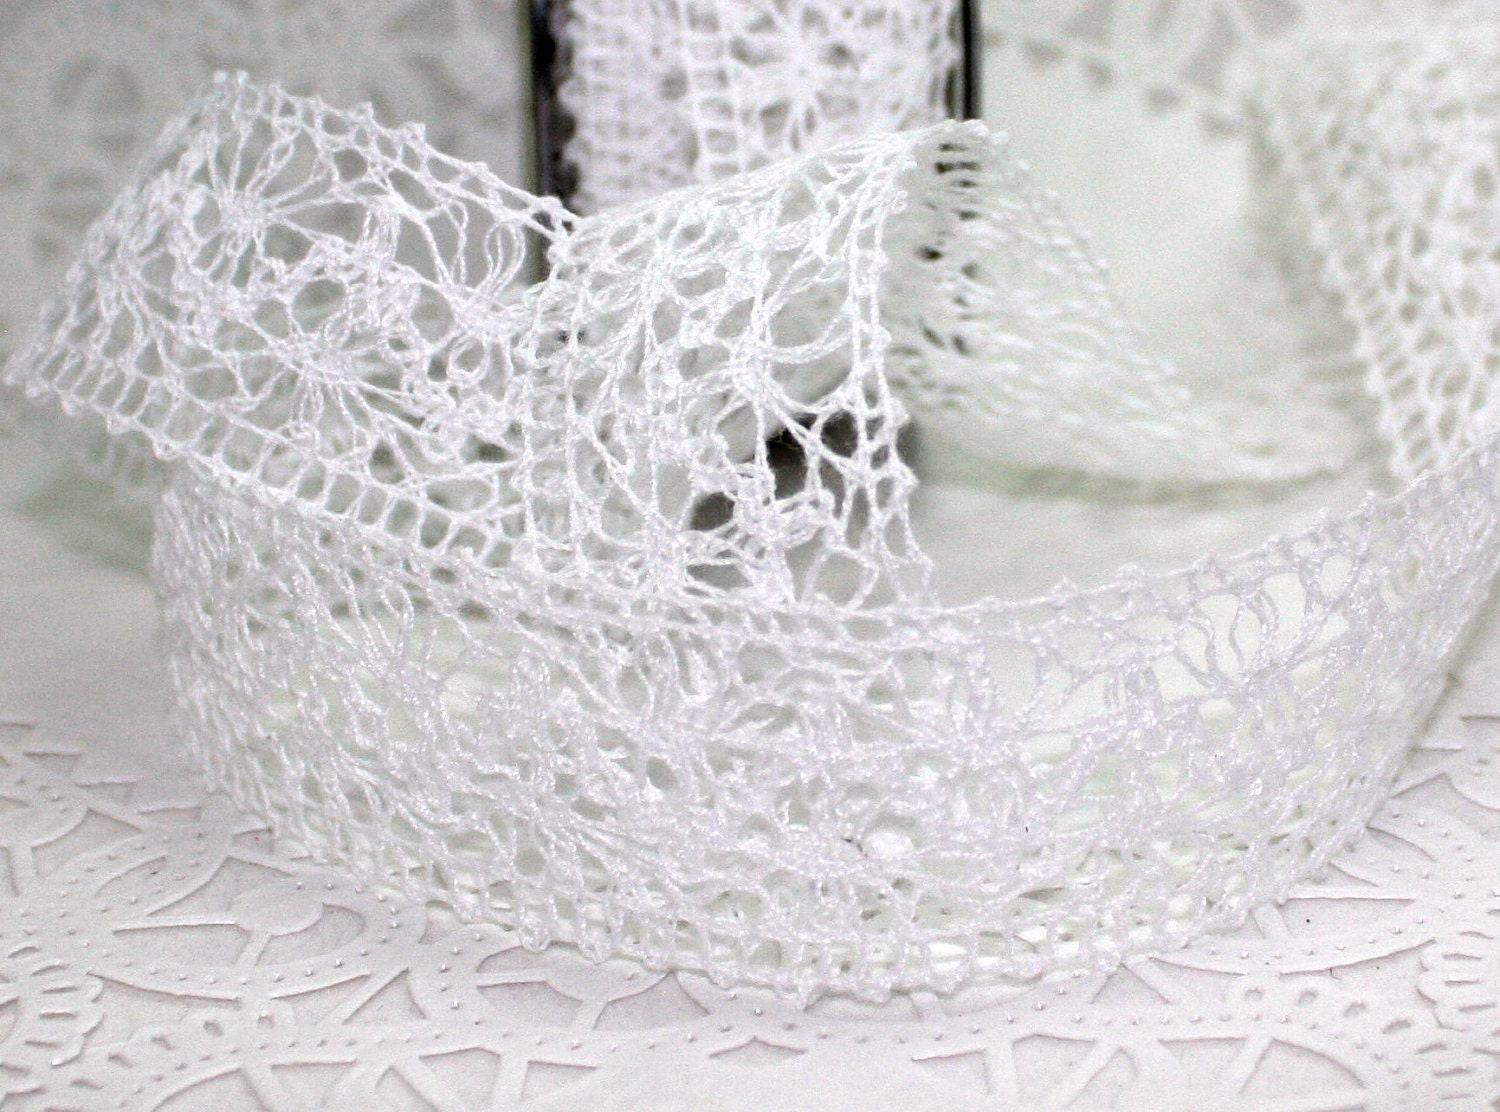 White lace apron wedding - White Crochet Lace Ribbon Lace Trim White Lace 1 5 Wide By The Yard Weddings Gift Wrapping Crafts Nursery Decor Sewing